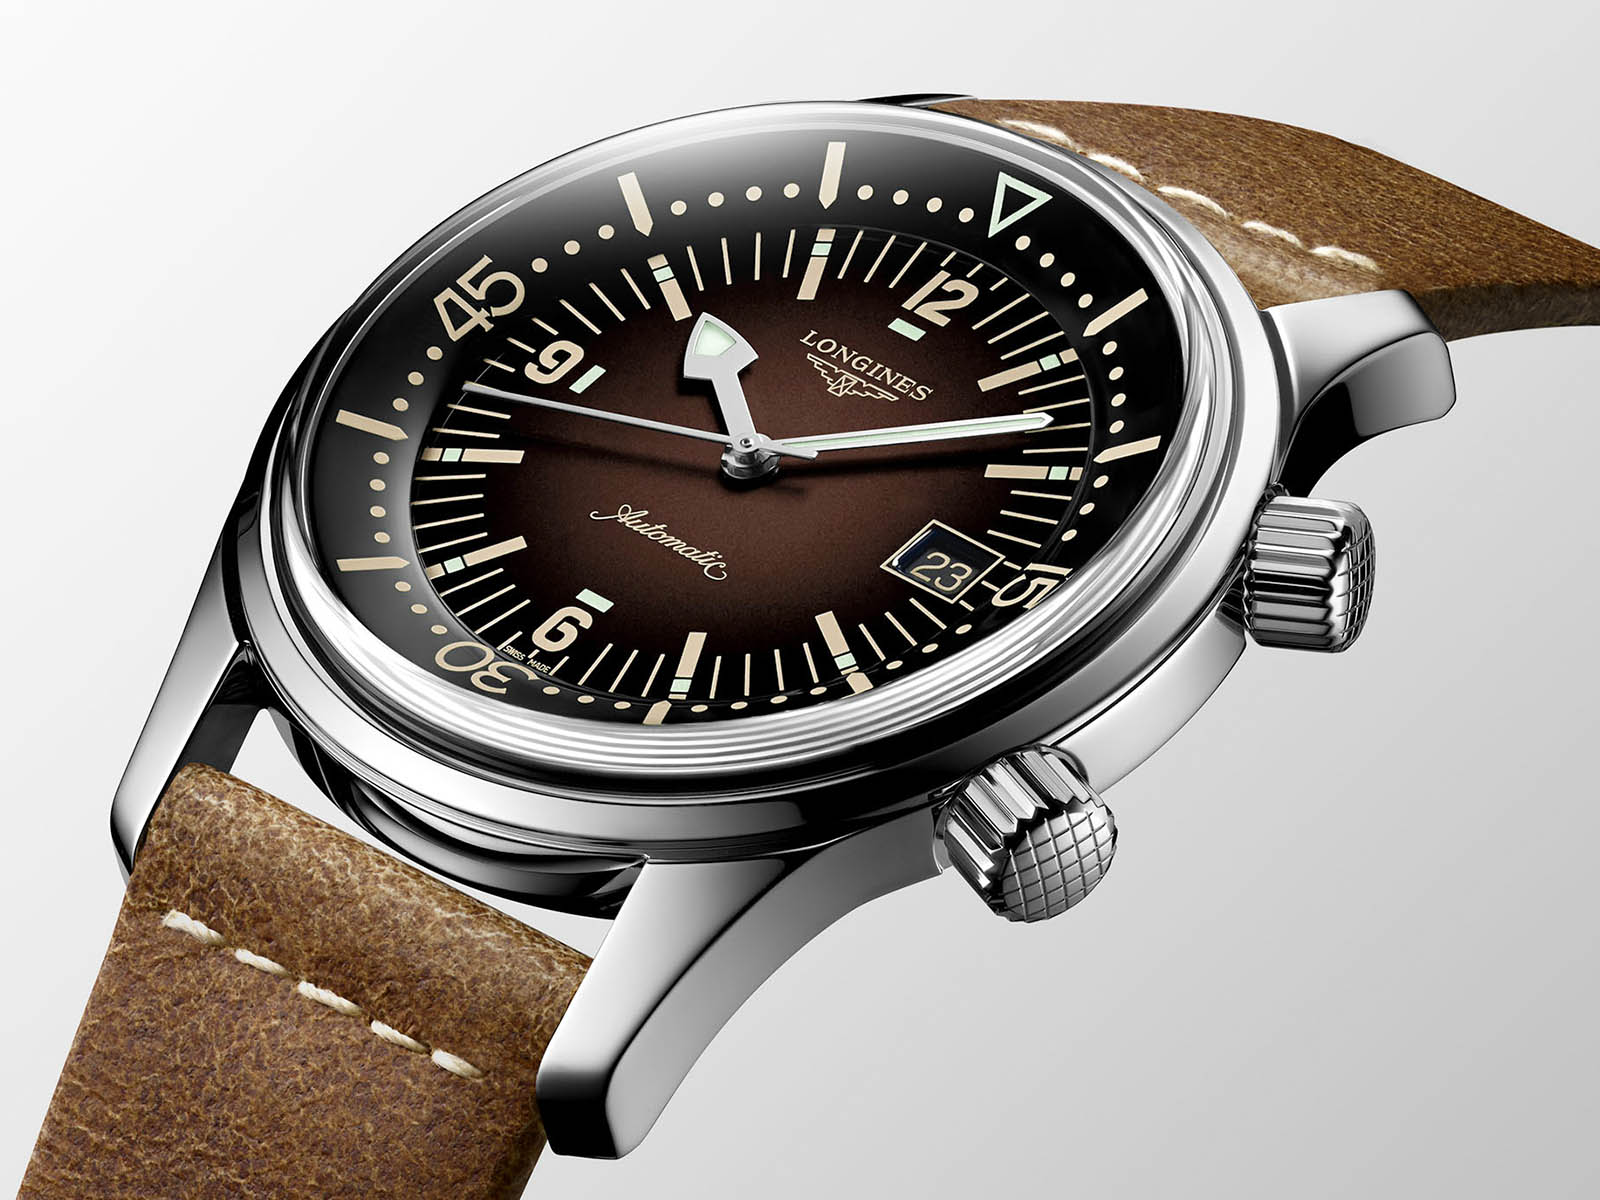 l3-774-4-60-2-longines-legend-diver-new-dial-colors-1.jpg